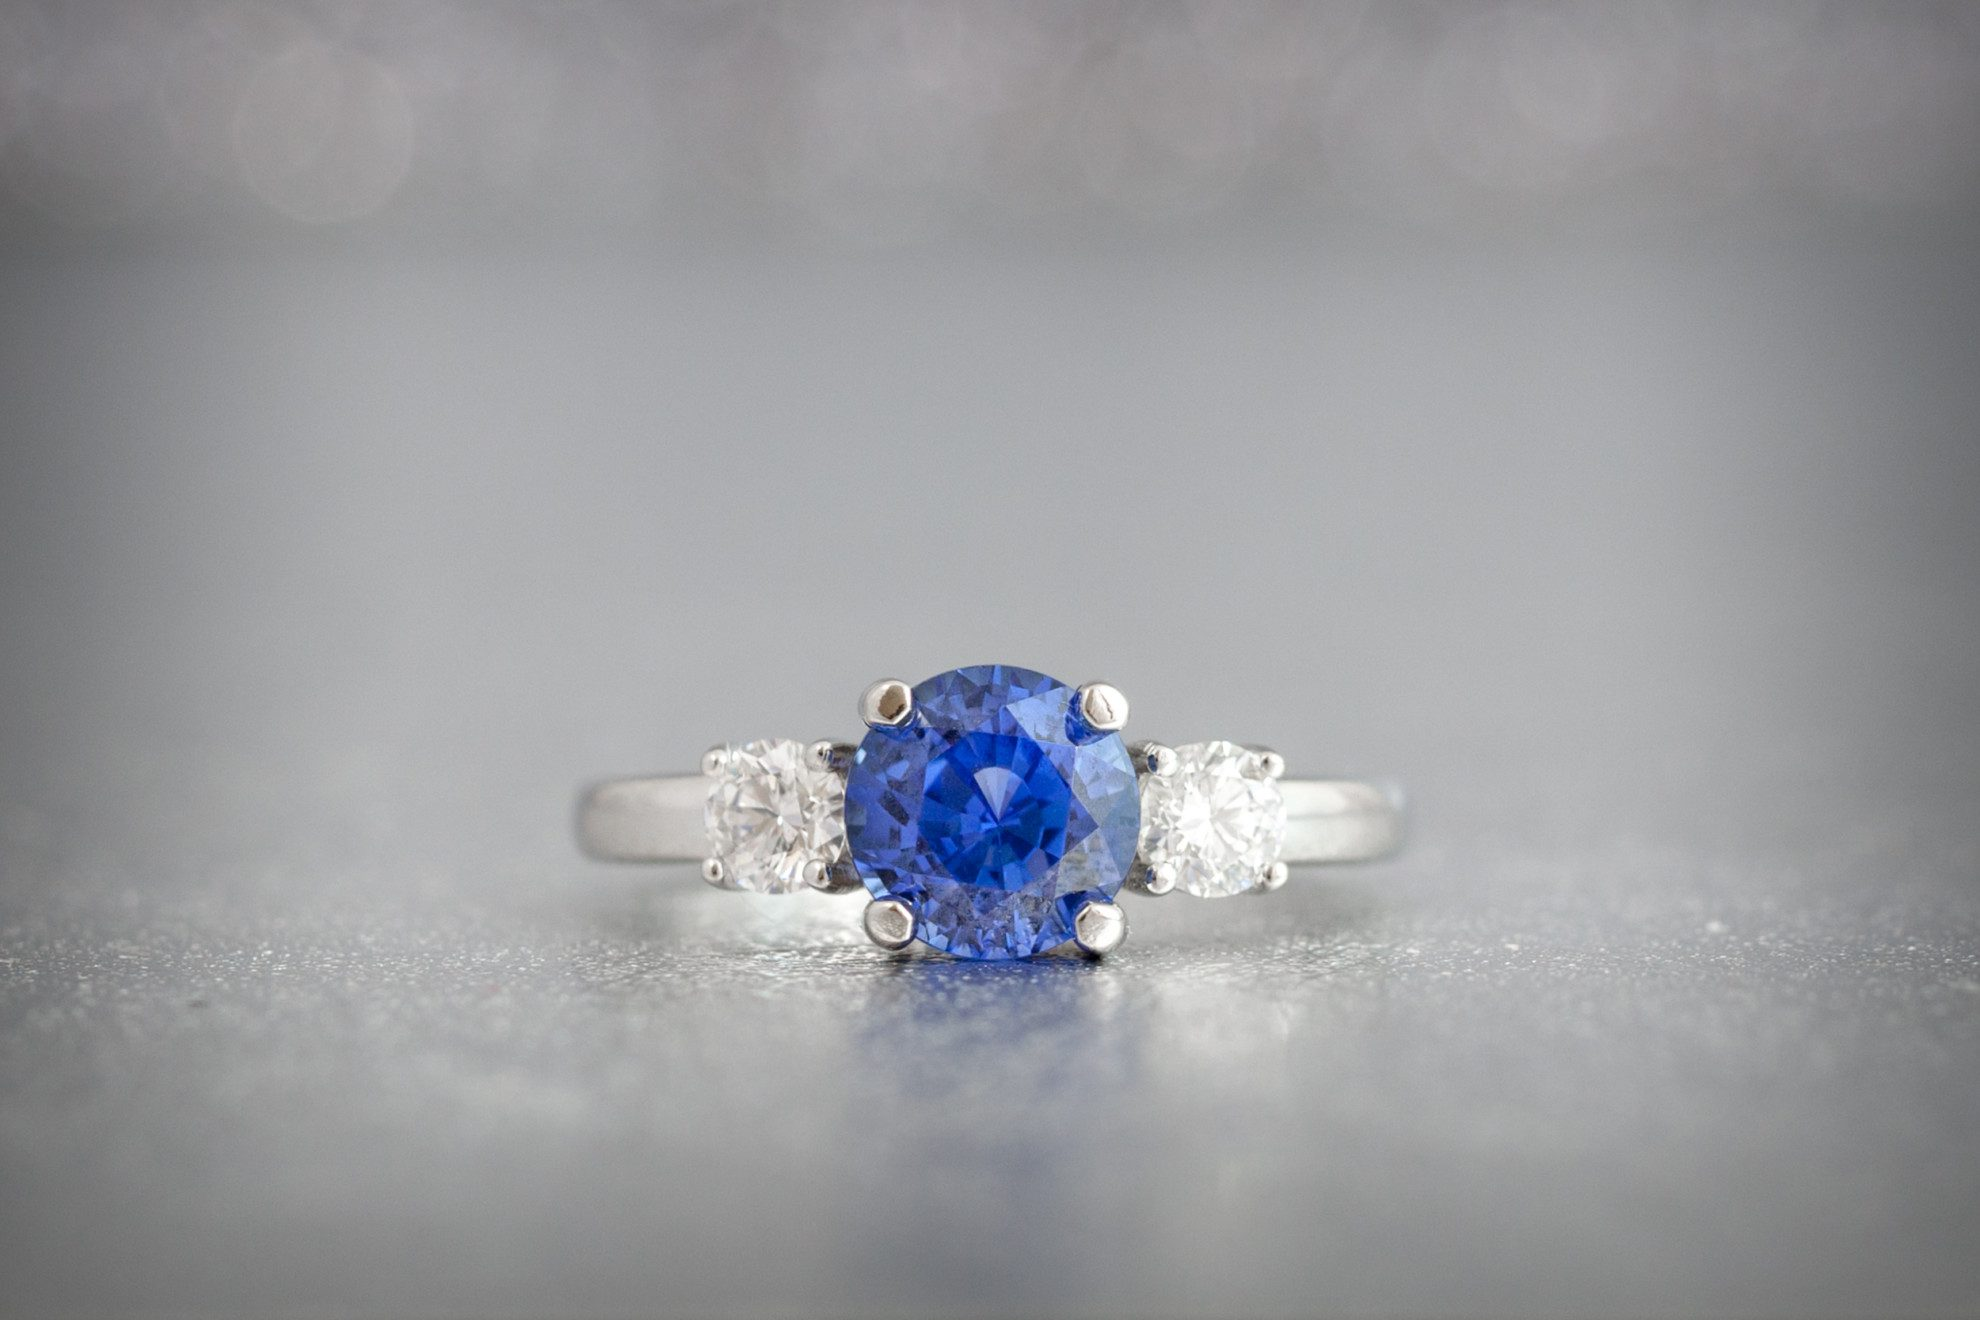 engagement with topic porn e rings image ring stones sapphire colored